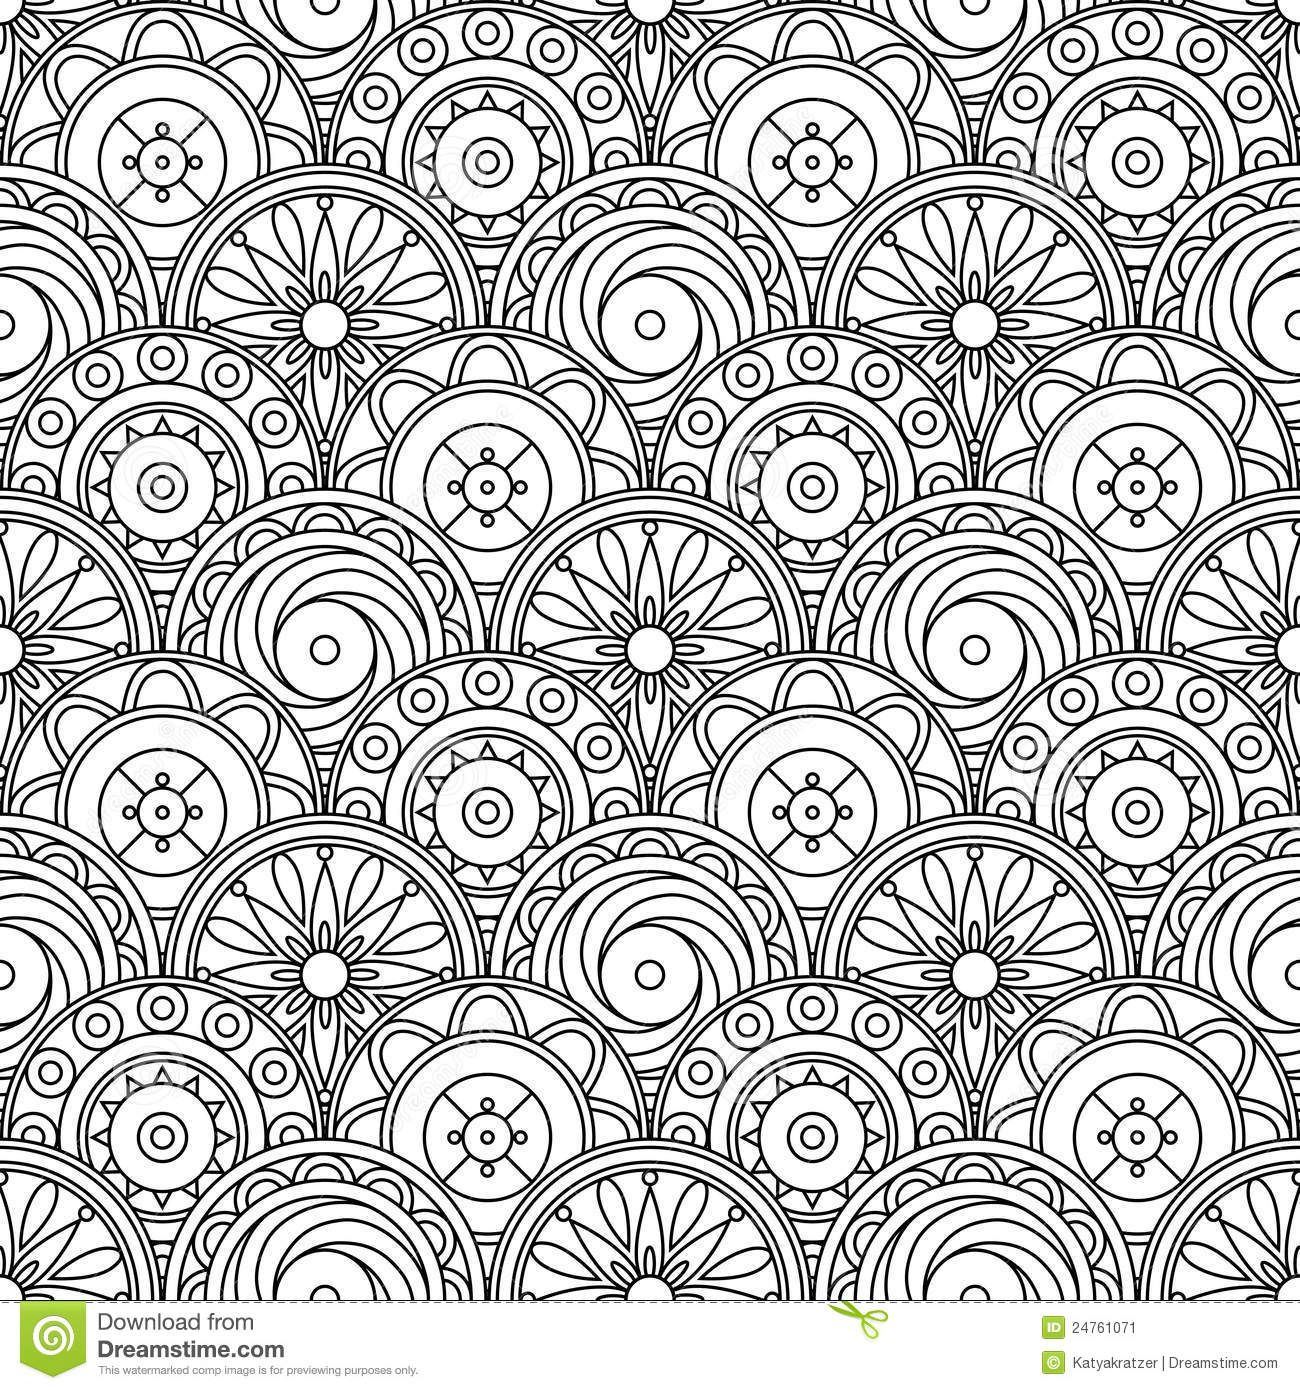 abstract doodle coloring pages colouring adult detailed advanced printable kleuren voor volwassenen - Coloring Or Colouring